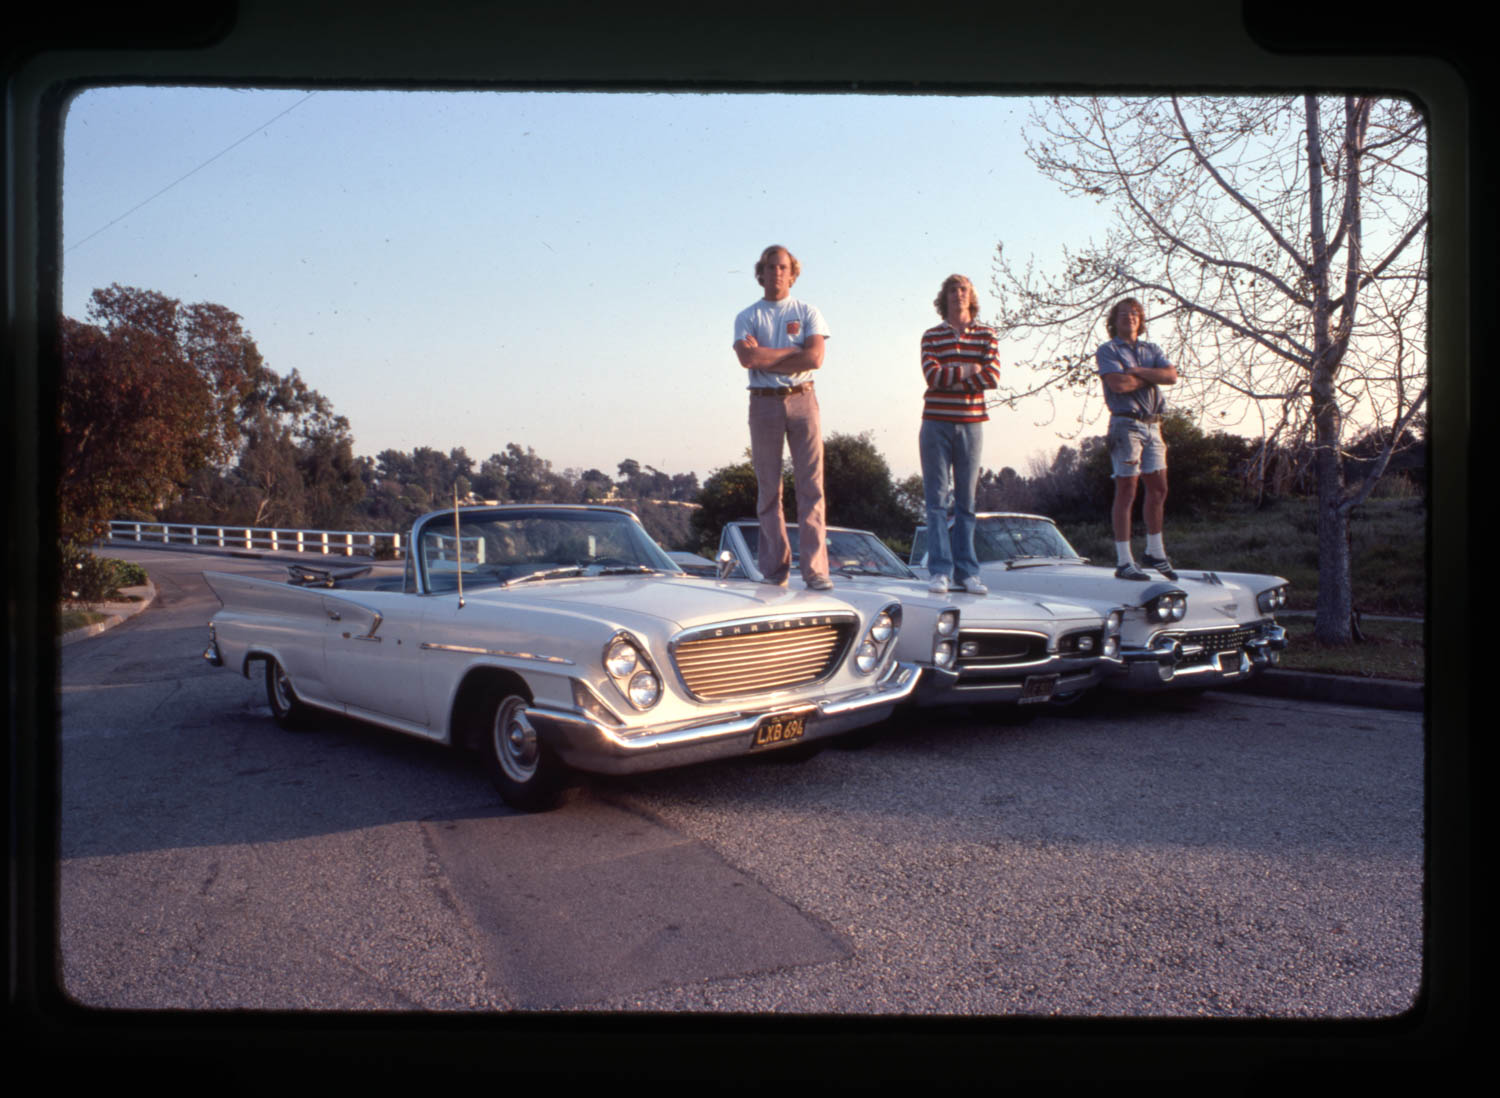 Fins and freedom in 1977: Author John L. Stein and pals Jim Graves and William Metzelaar hit the road 43 years ago in a '61 Chrysler.